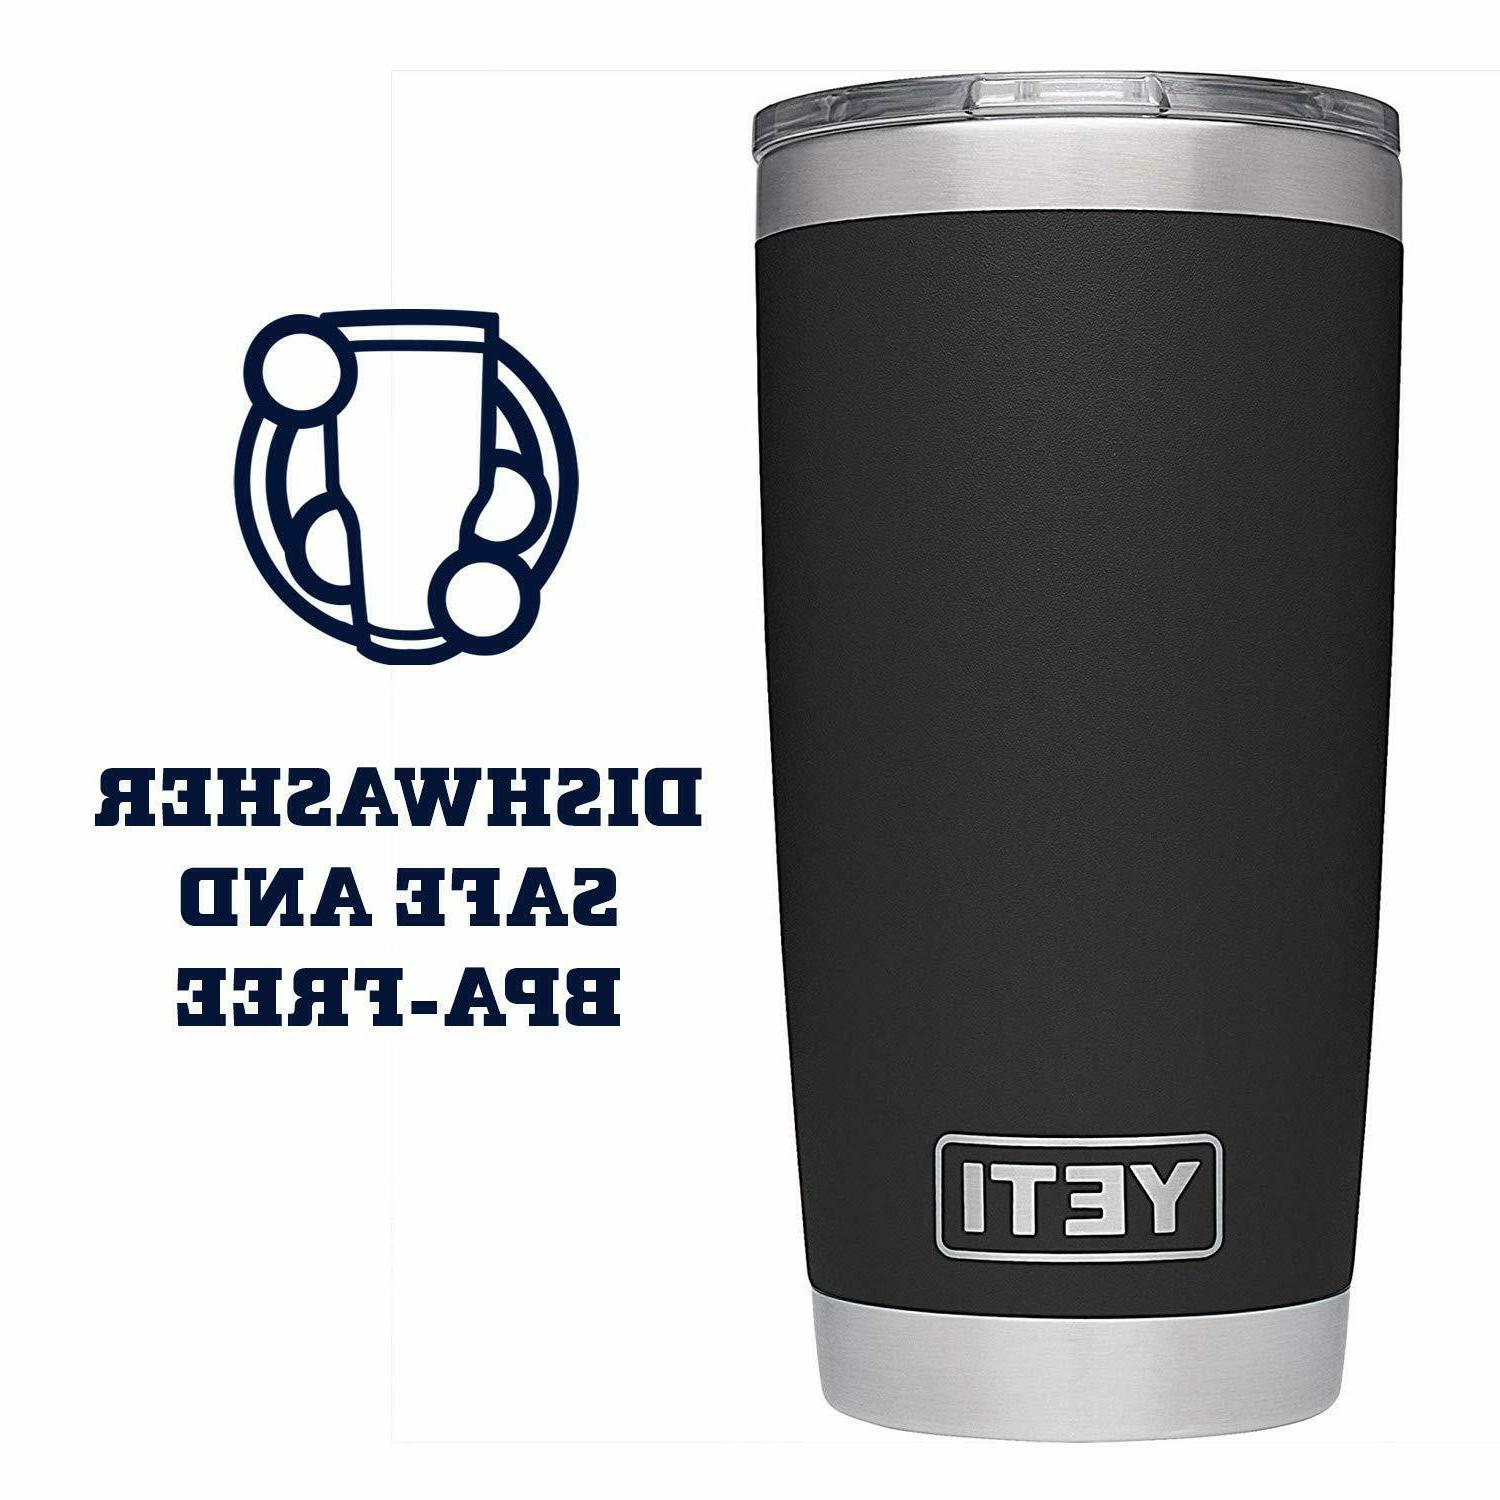 Yeti Steel Cup Vacuum Insulated with Lid